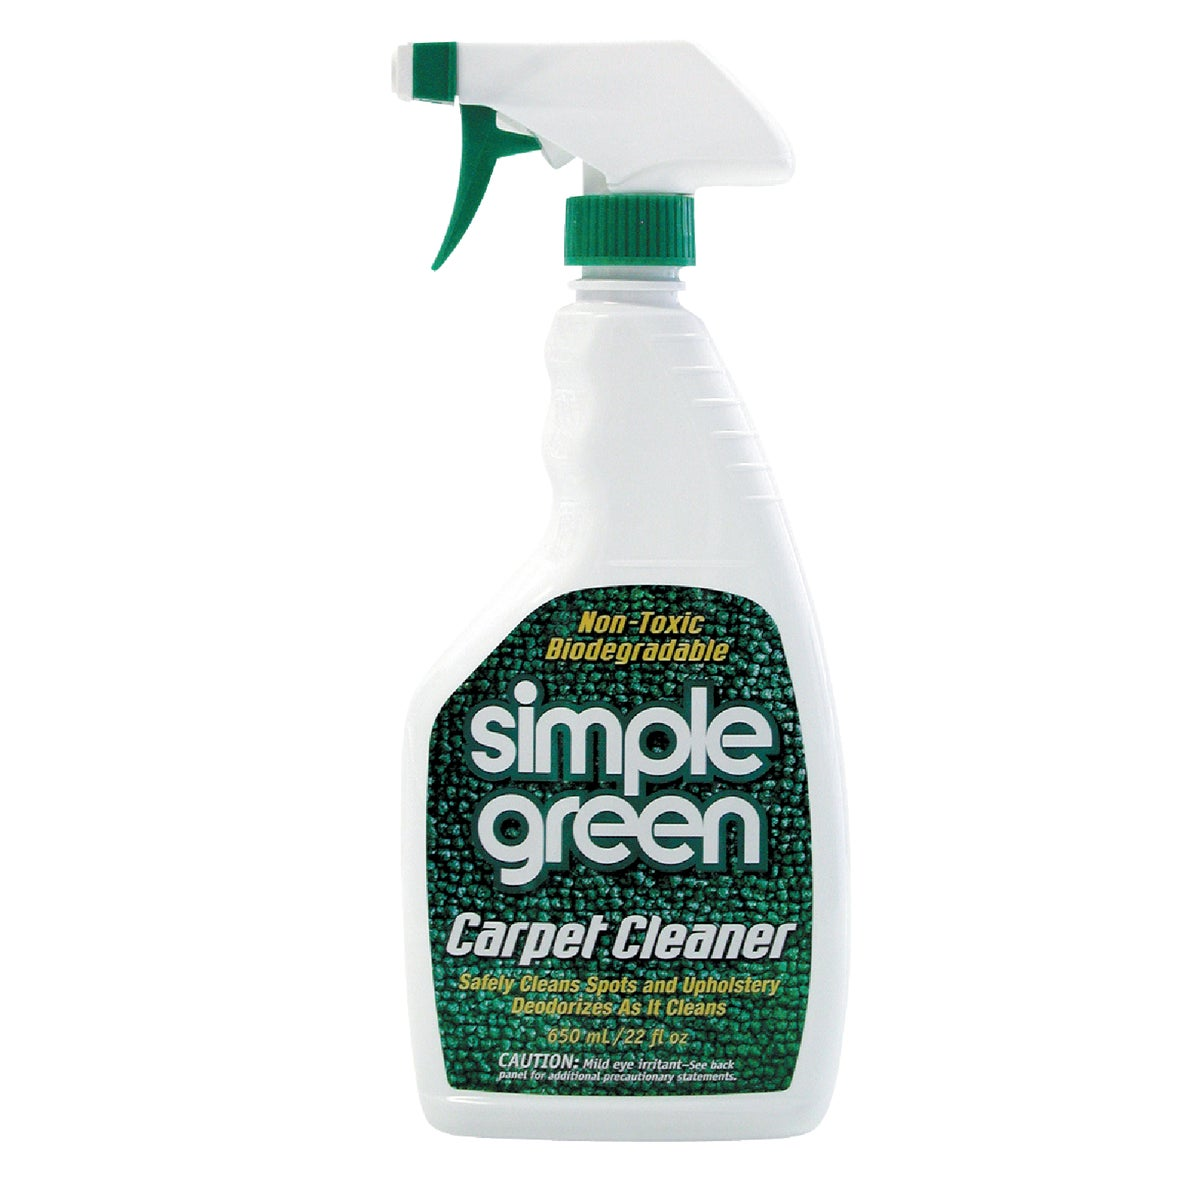 22OZ CARPET CLEANER - 0510001257024 by Sunshine Makers Inc